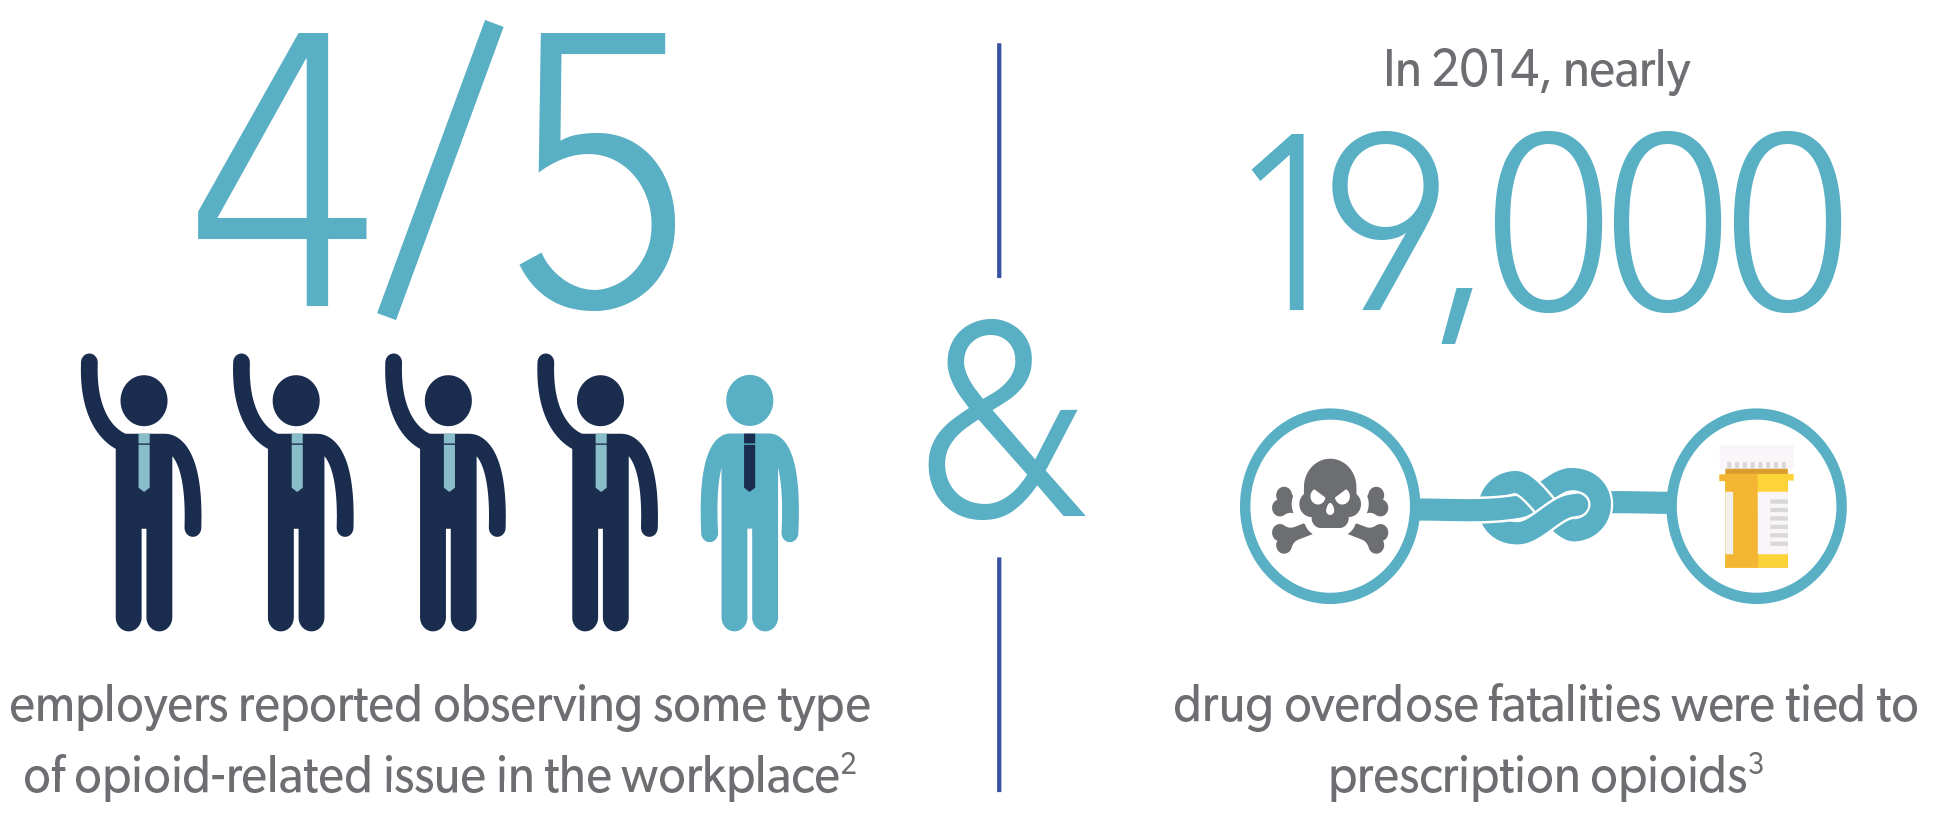 teenage drug use Drugs and teenagers drug use is one of the most serious and concerning issues among teenagers in today's high schools most drug use begins in the preteen and teenage years, and it is these years that can be the most crucial in determining how a young person develops as a human being.